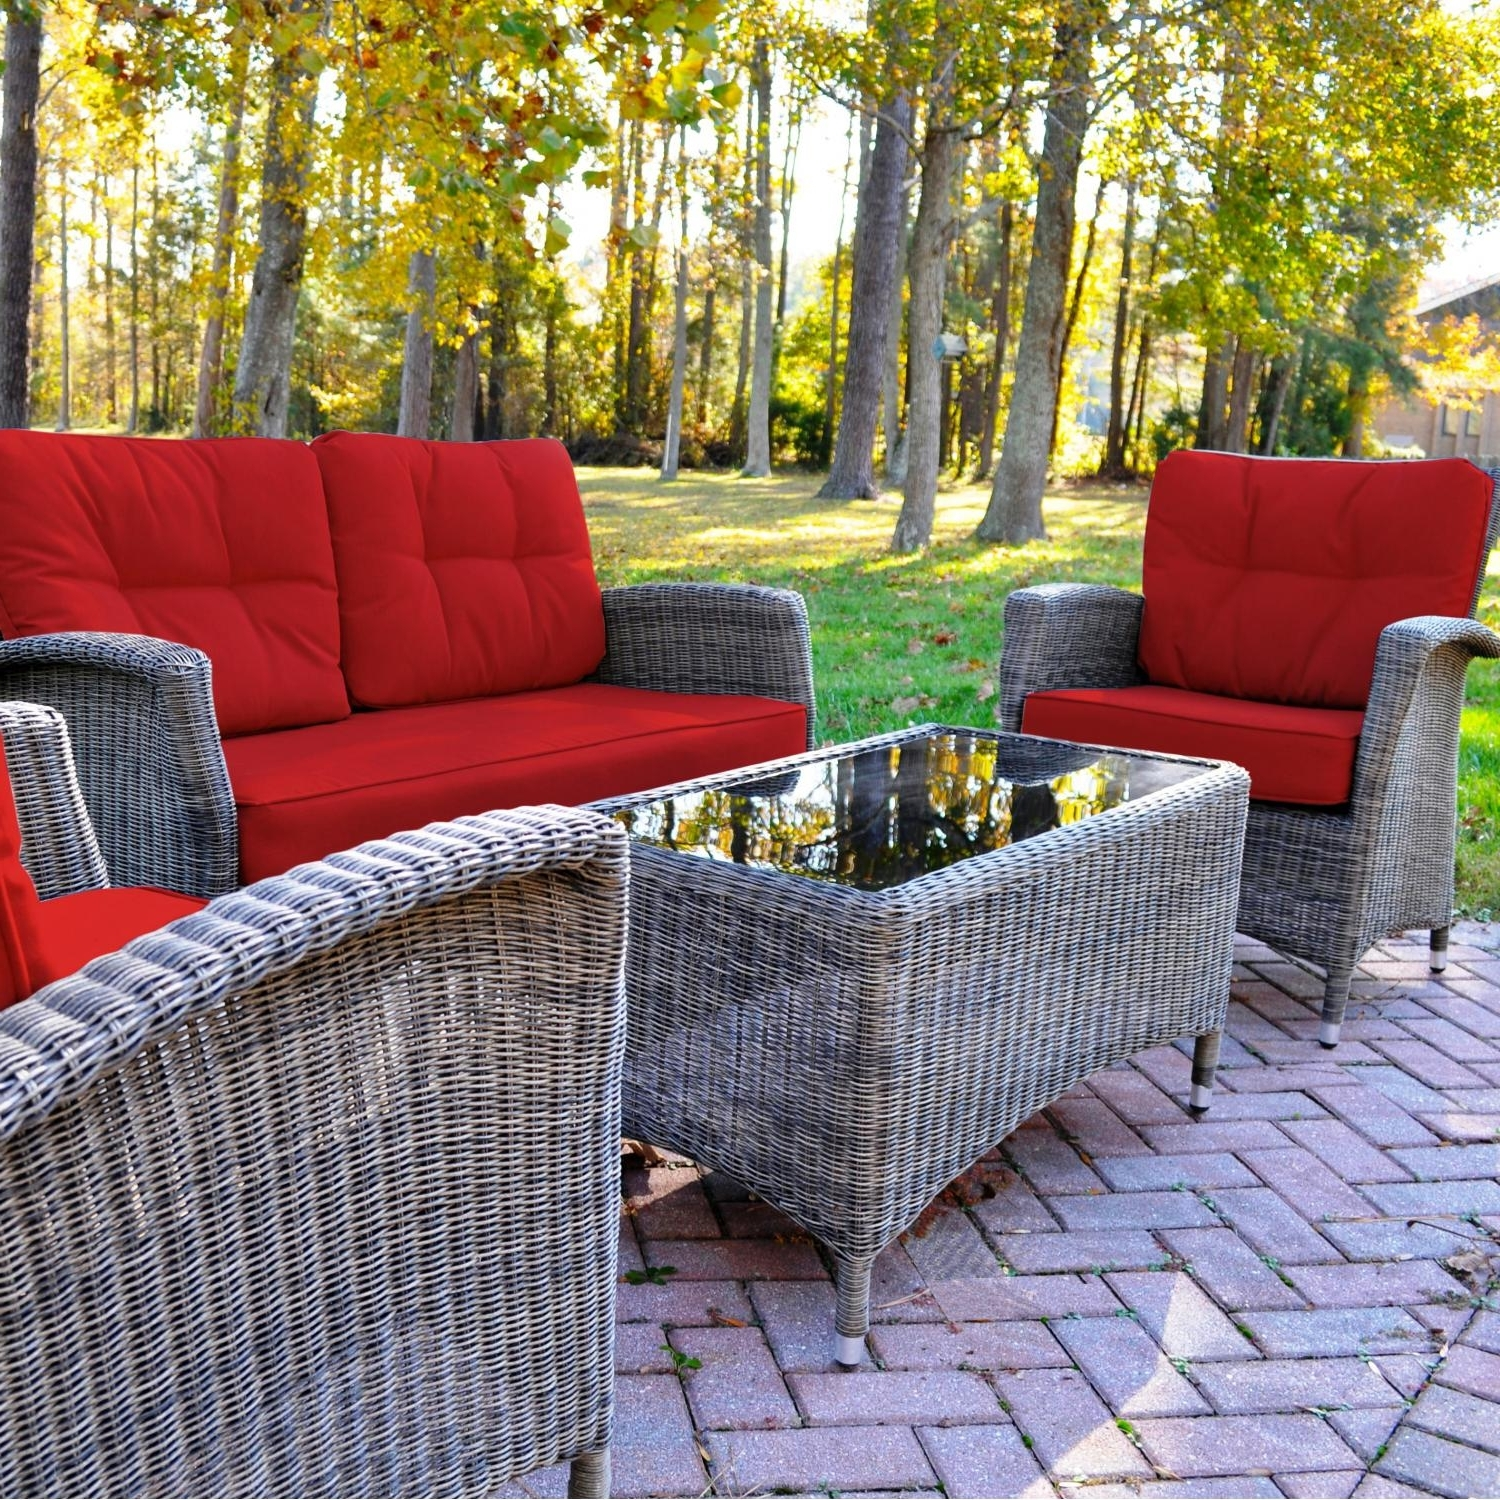 Red Patio Conversation Sets Regarding Most Current Kettler Lakena 4 Piece Wicker Patio Conversation Set With Jockey Red (View 14 of 20)